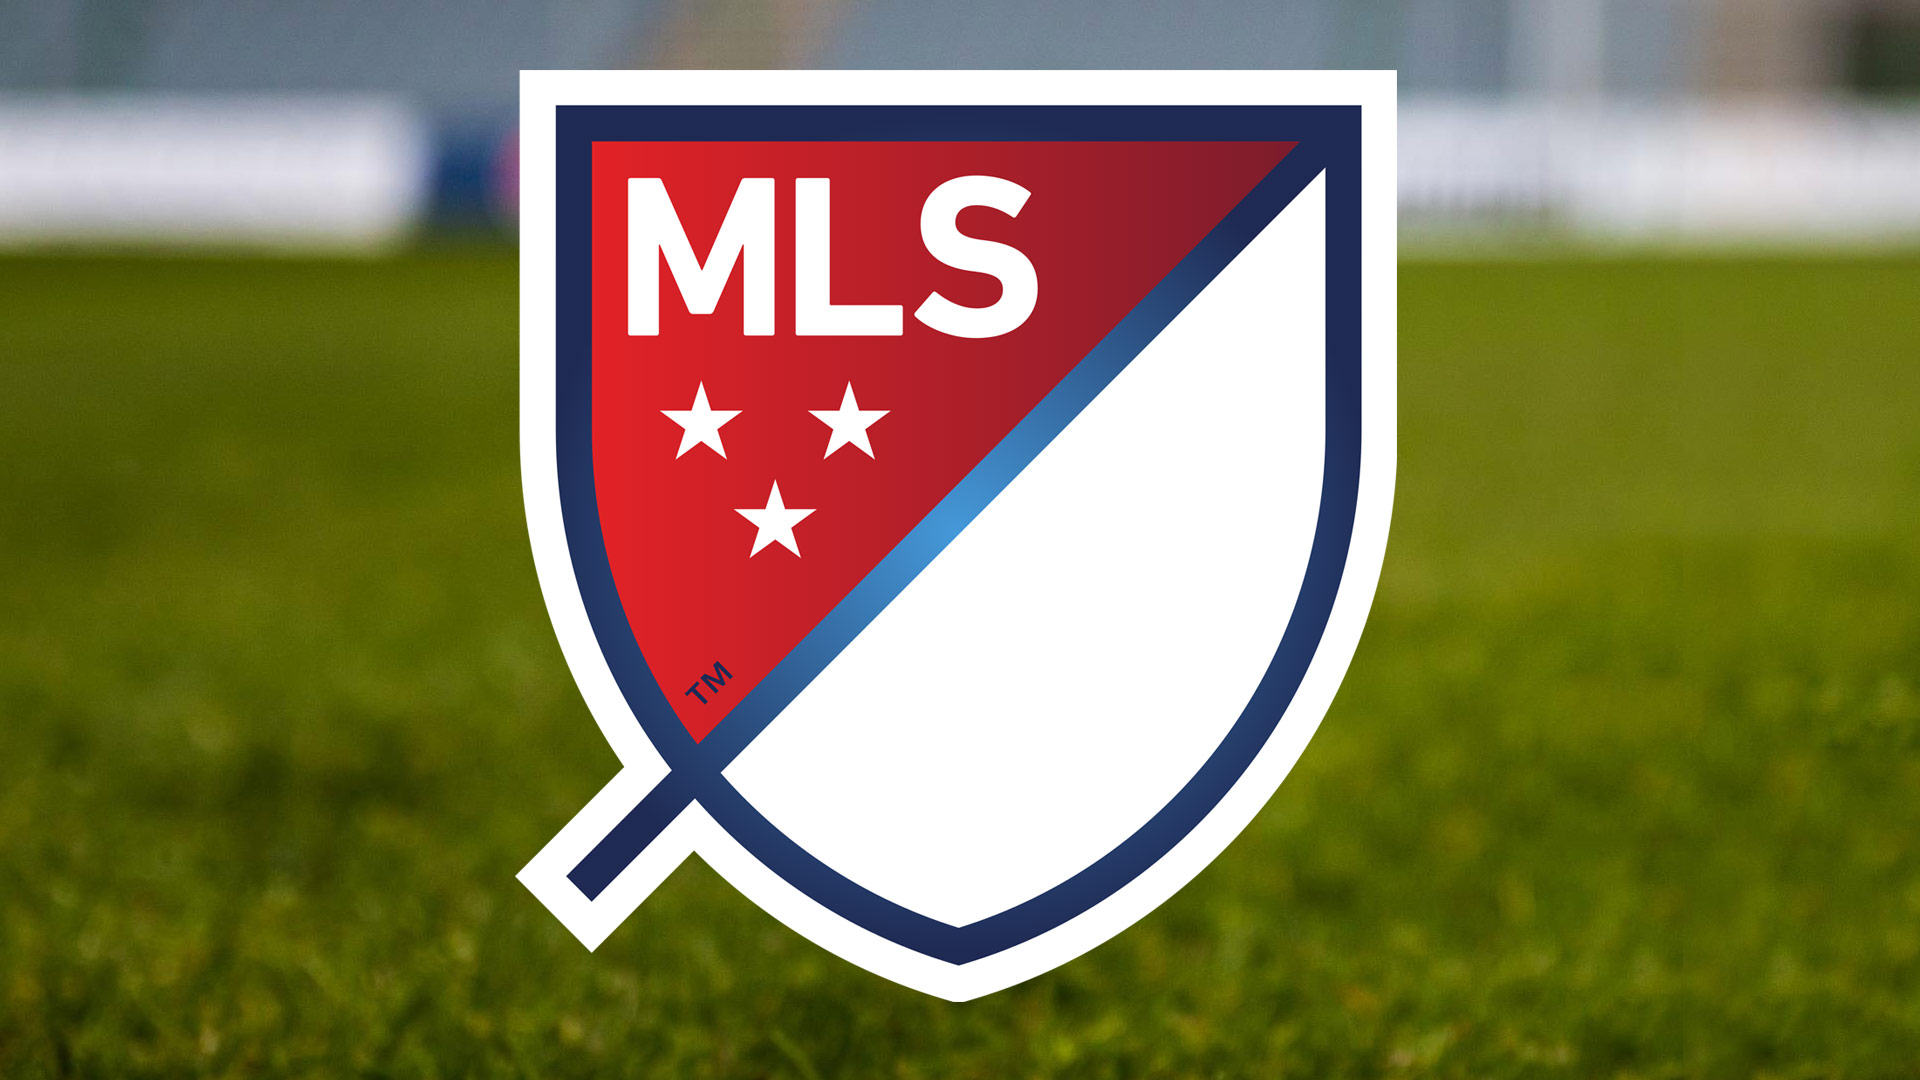 The logo for Major League Soccer.